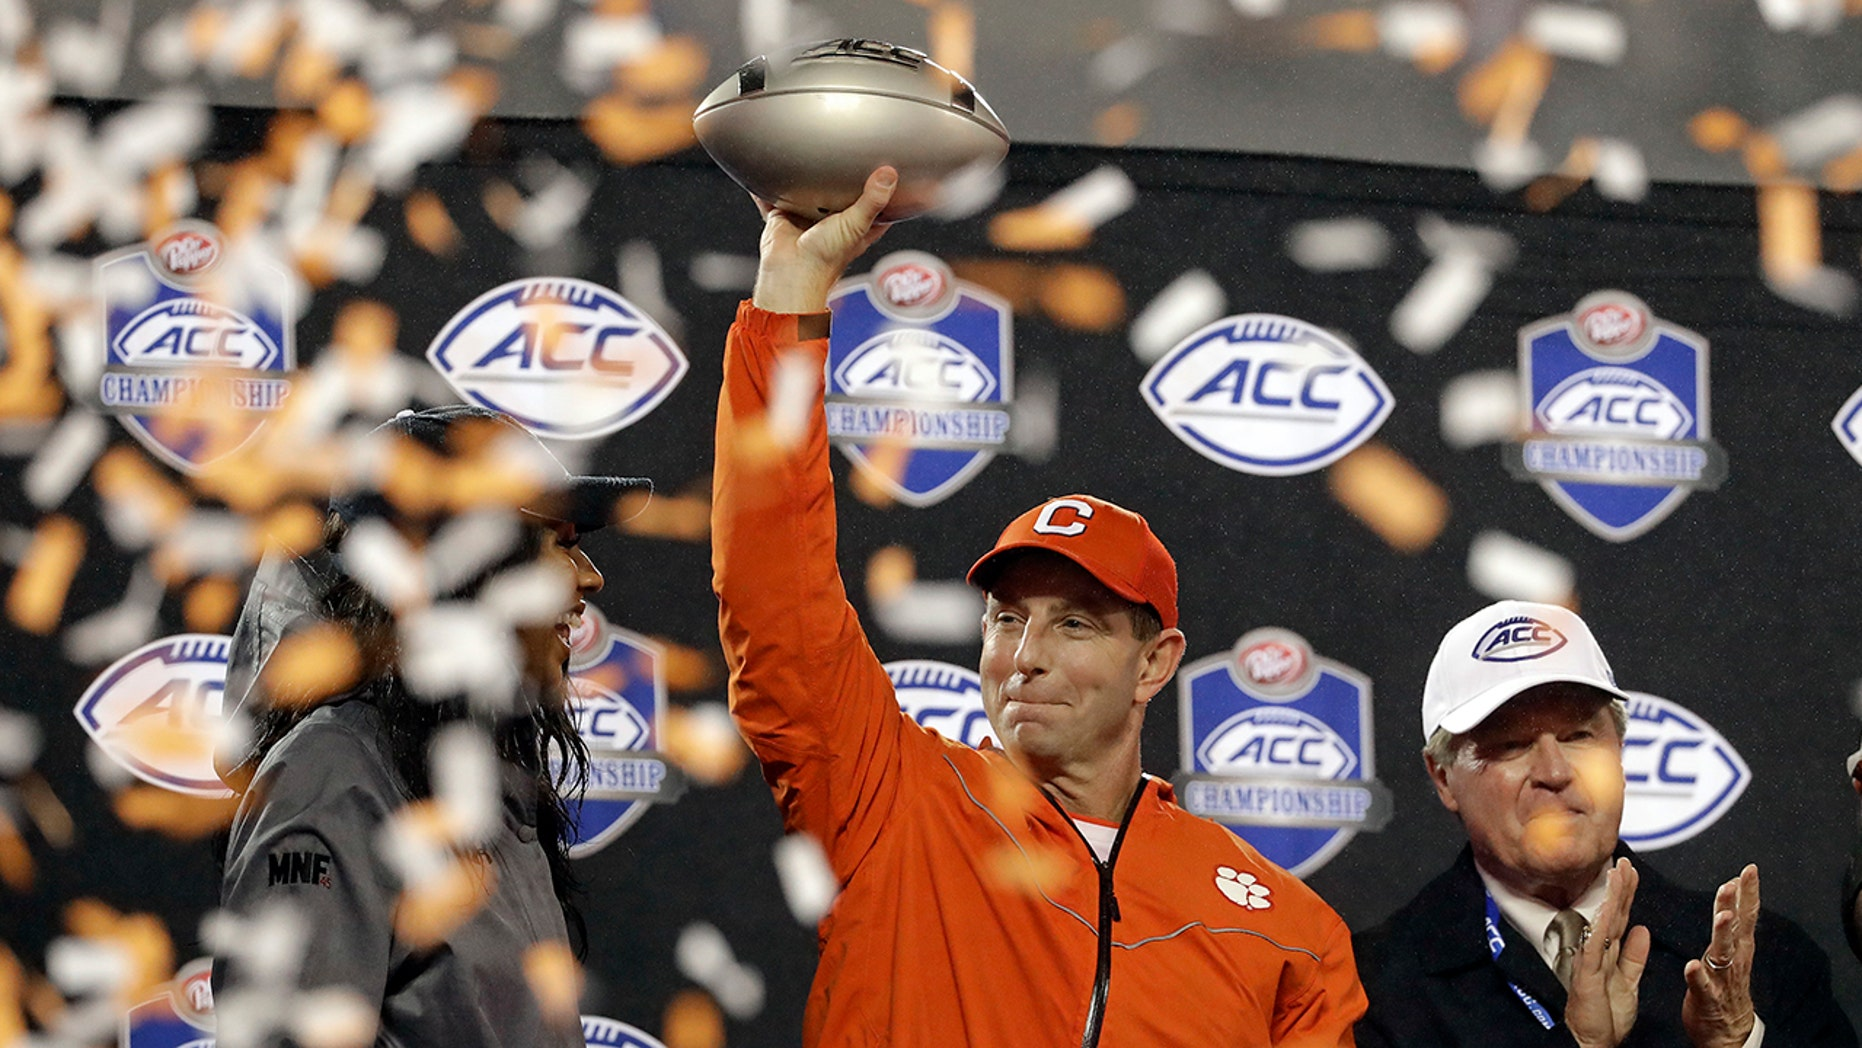 Clemson conduct manager Dabo Swinney raises a prize after Clemson won a Atlantic Coast Conference championship NCAA college football diversion opposite Pittsburgh in Charlotte, N.C., Saturday, Dec. 1, 2018. (AP Photo/Chuck Burton)